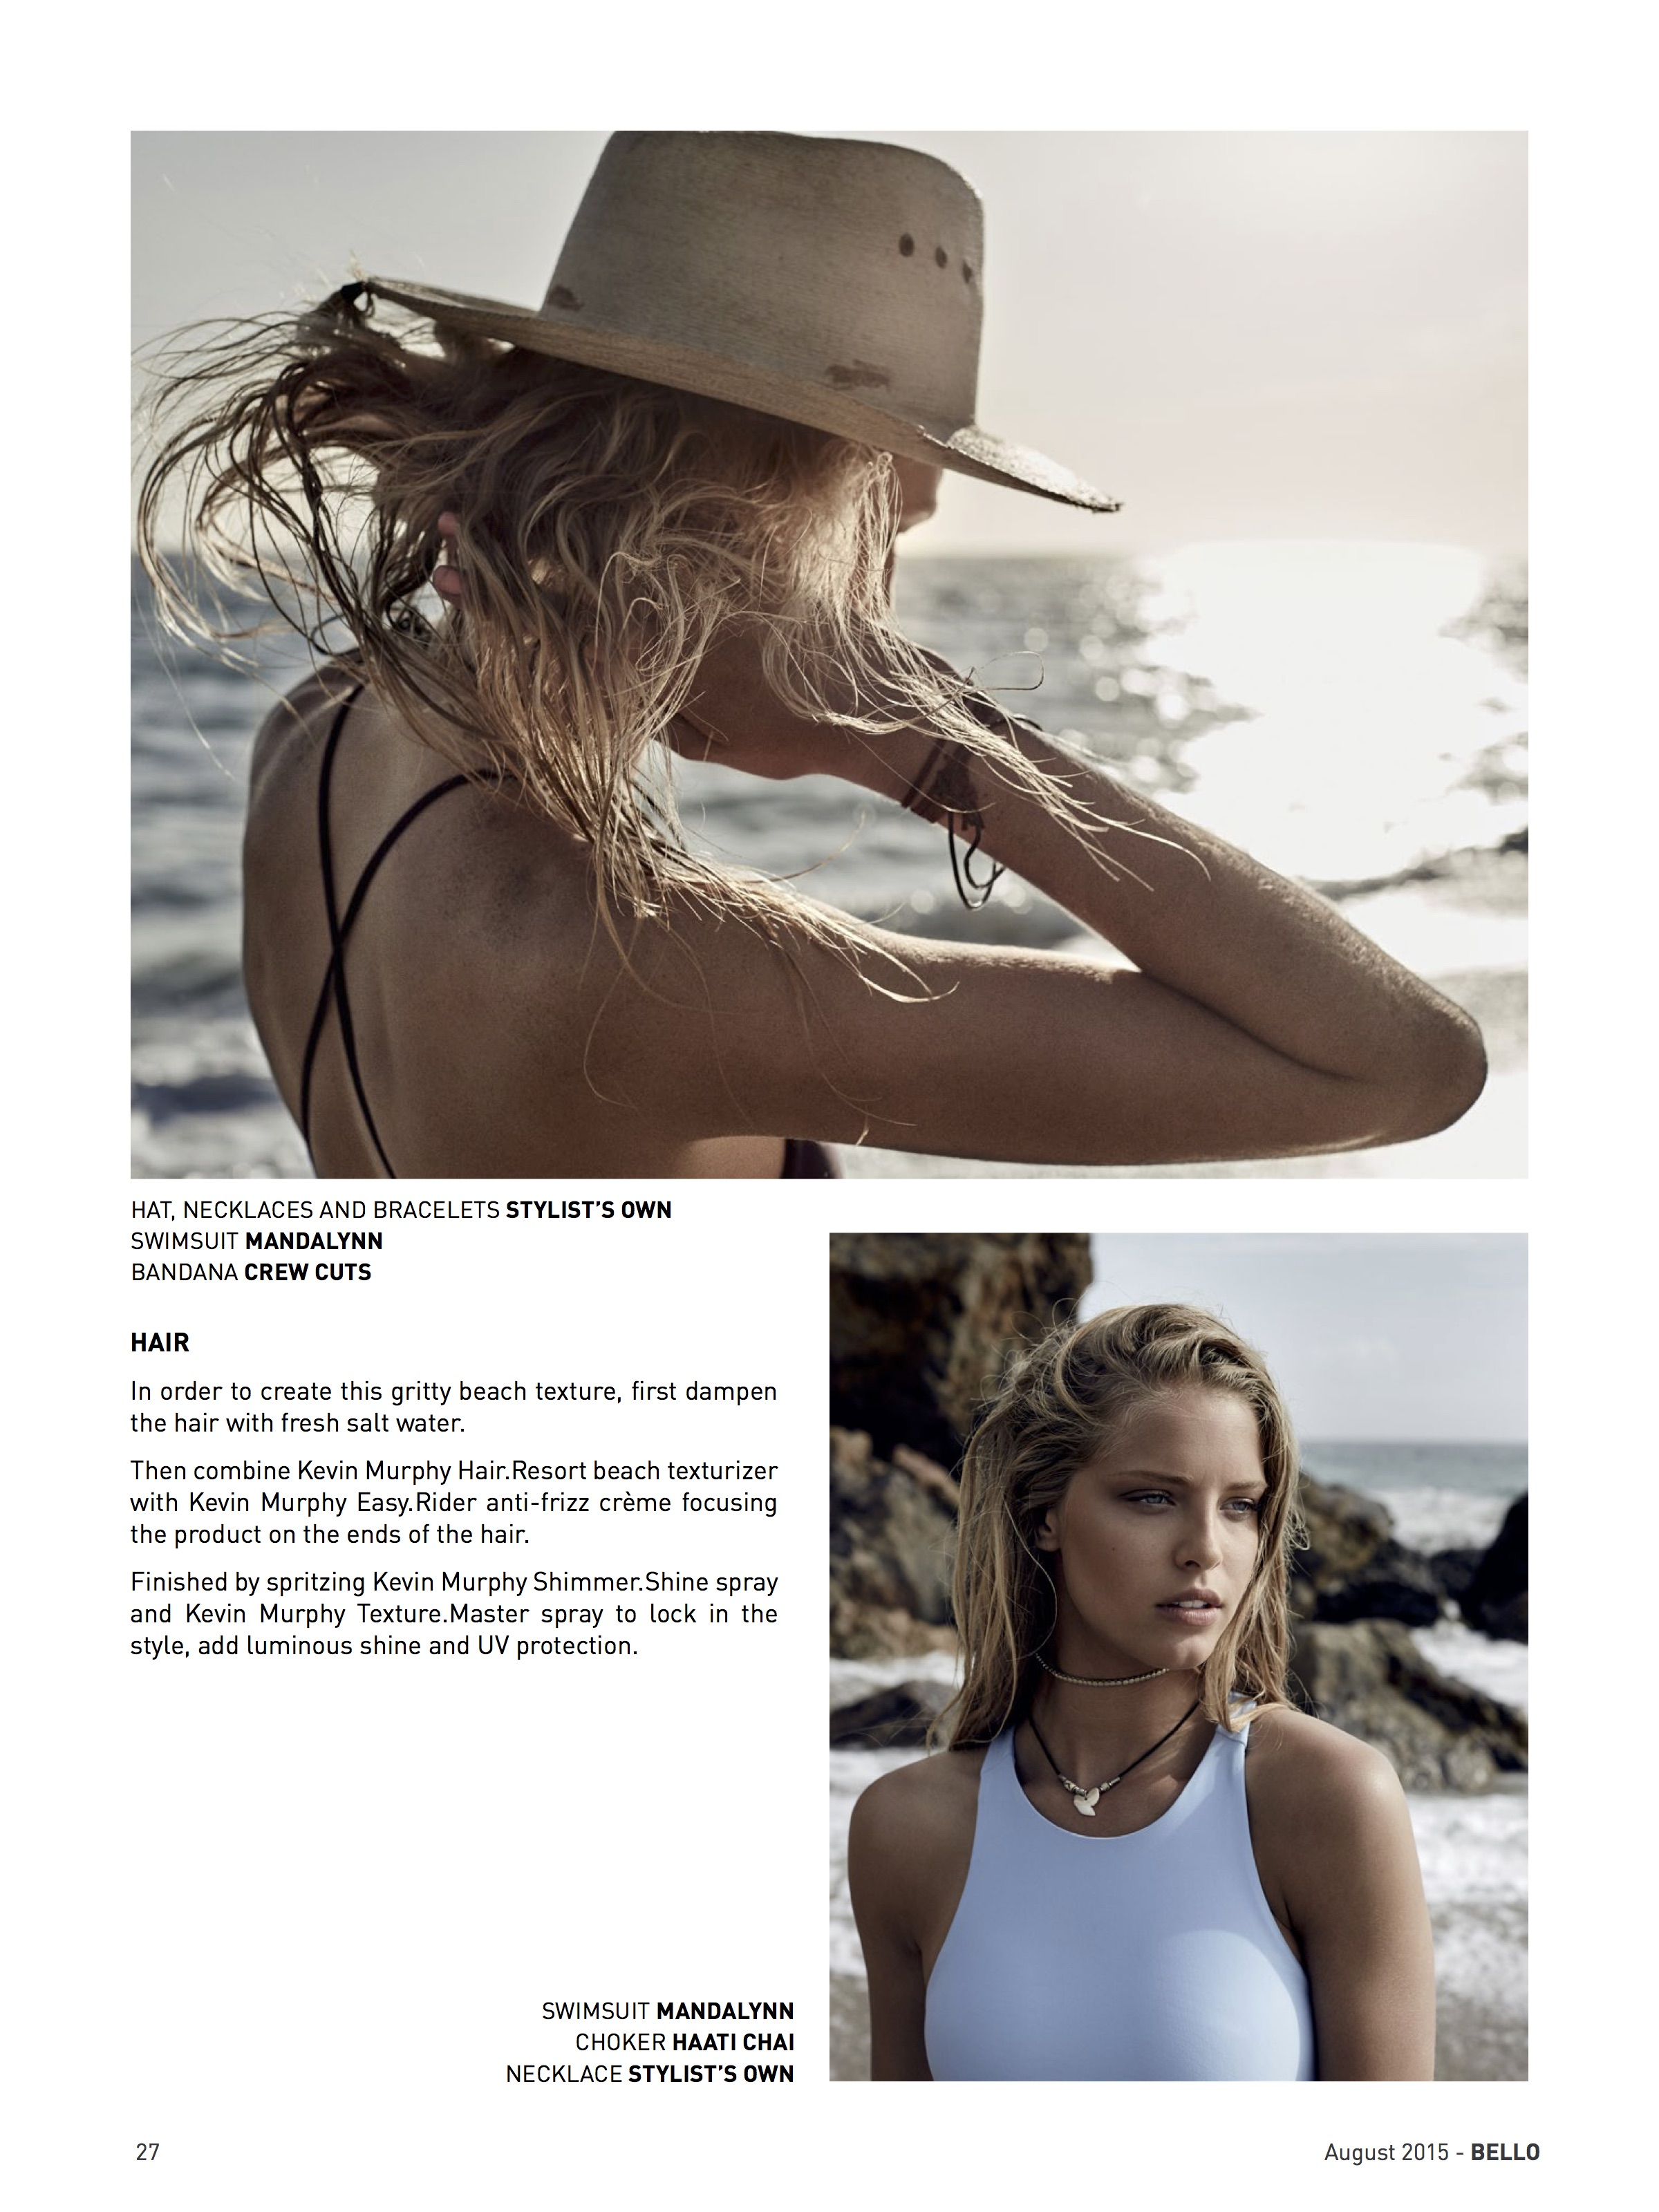 BELLO Beauty August 2015 (dragged) 10.jpg